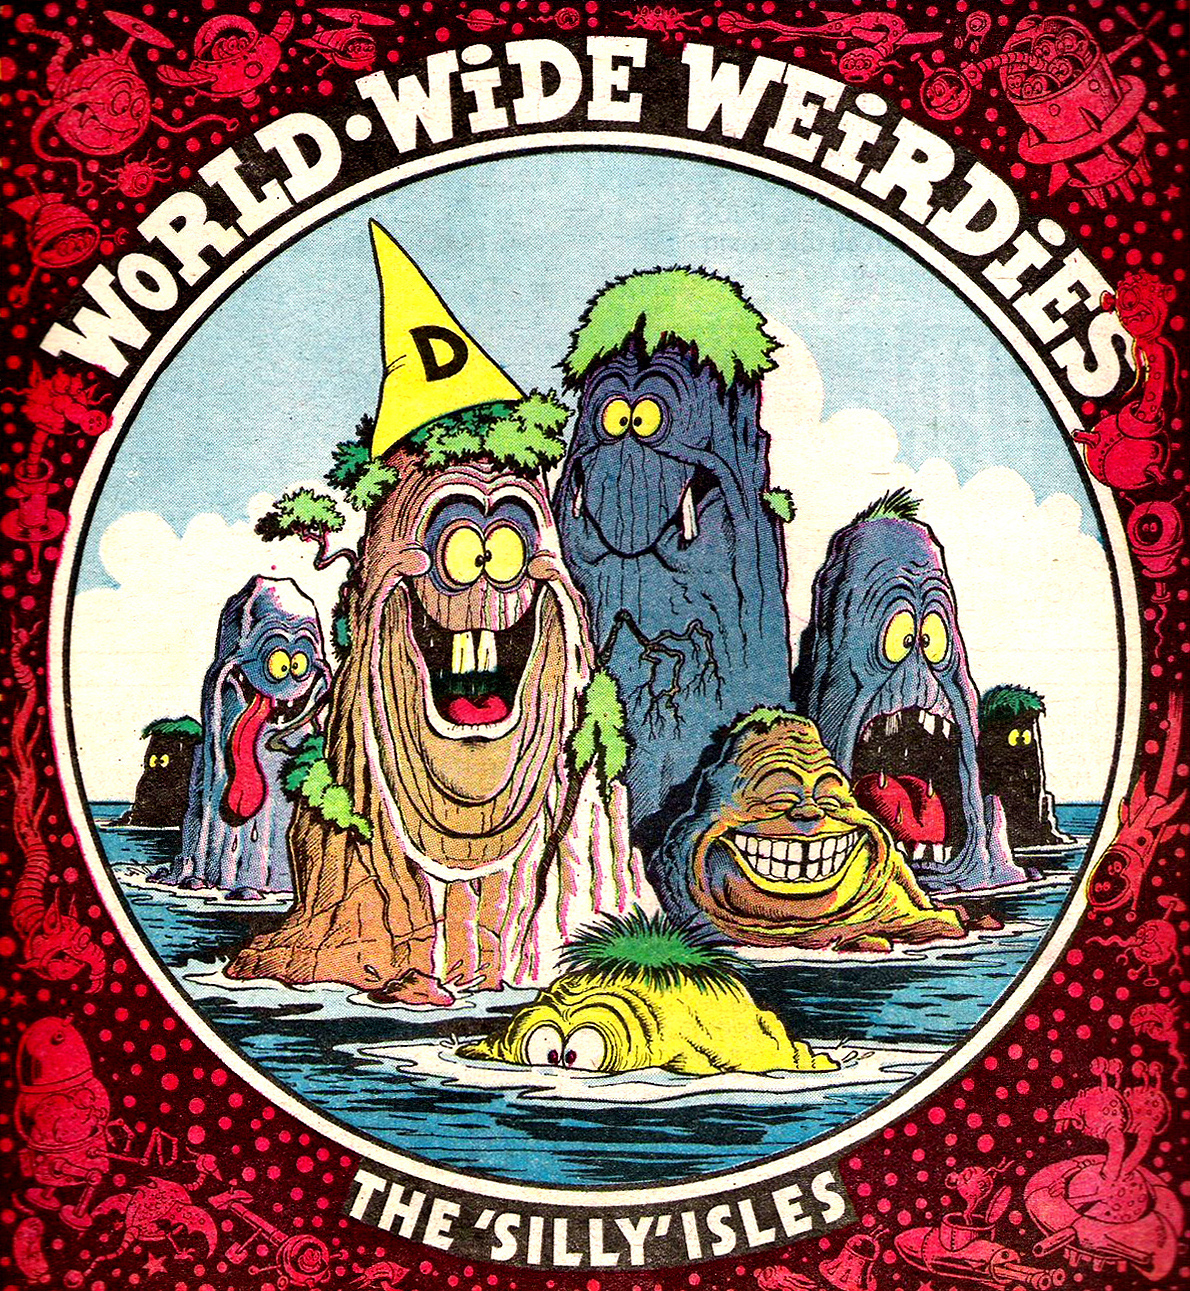 Ken Reid - World Wide Weirdies 85